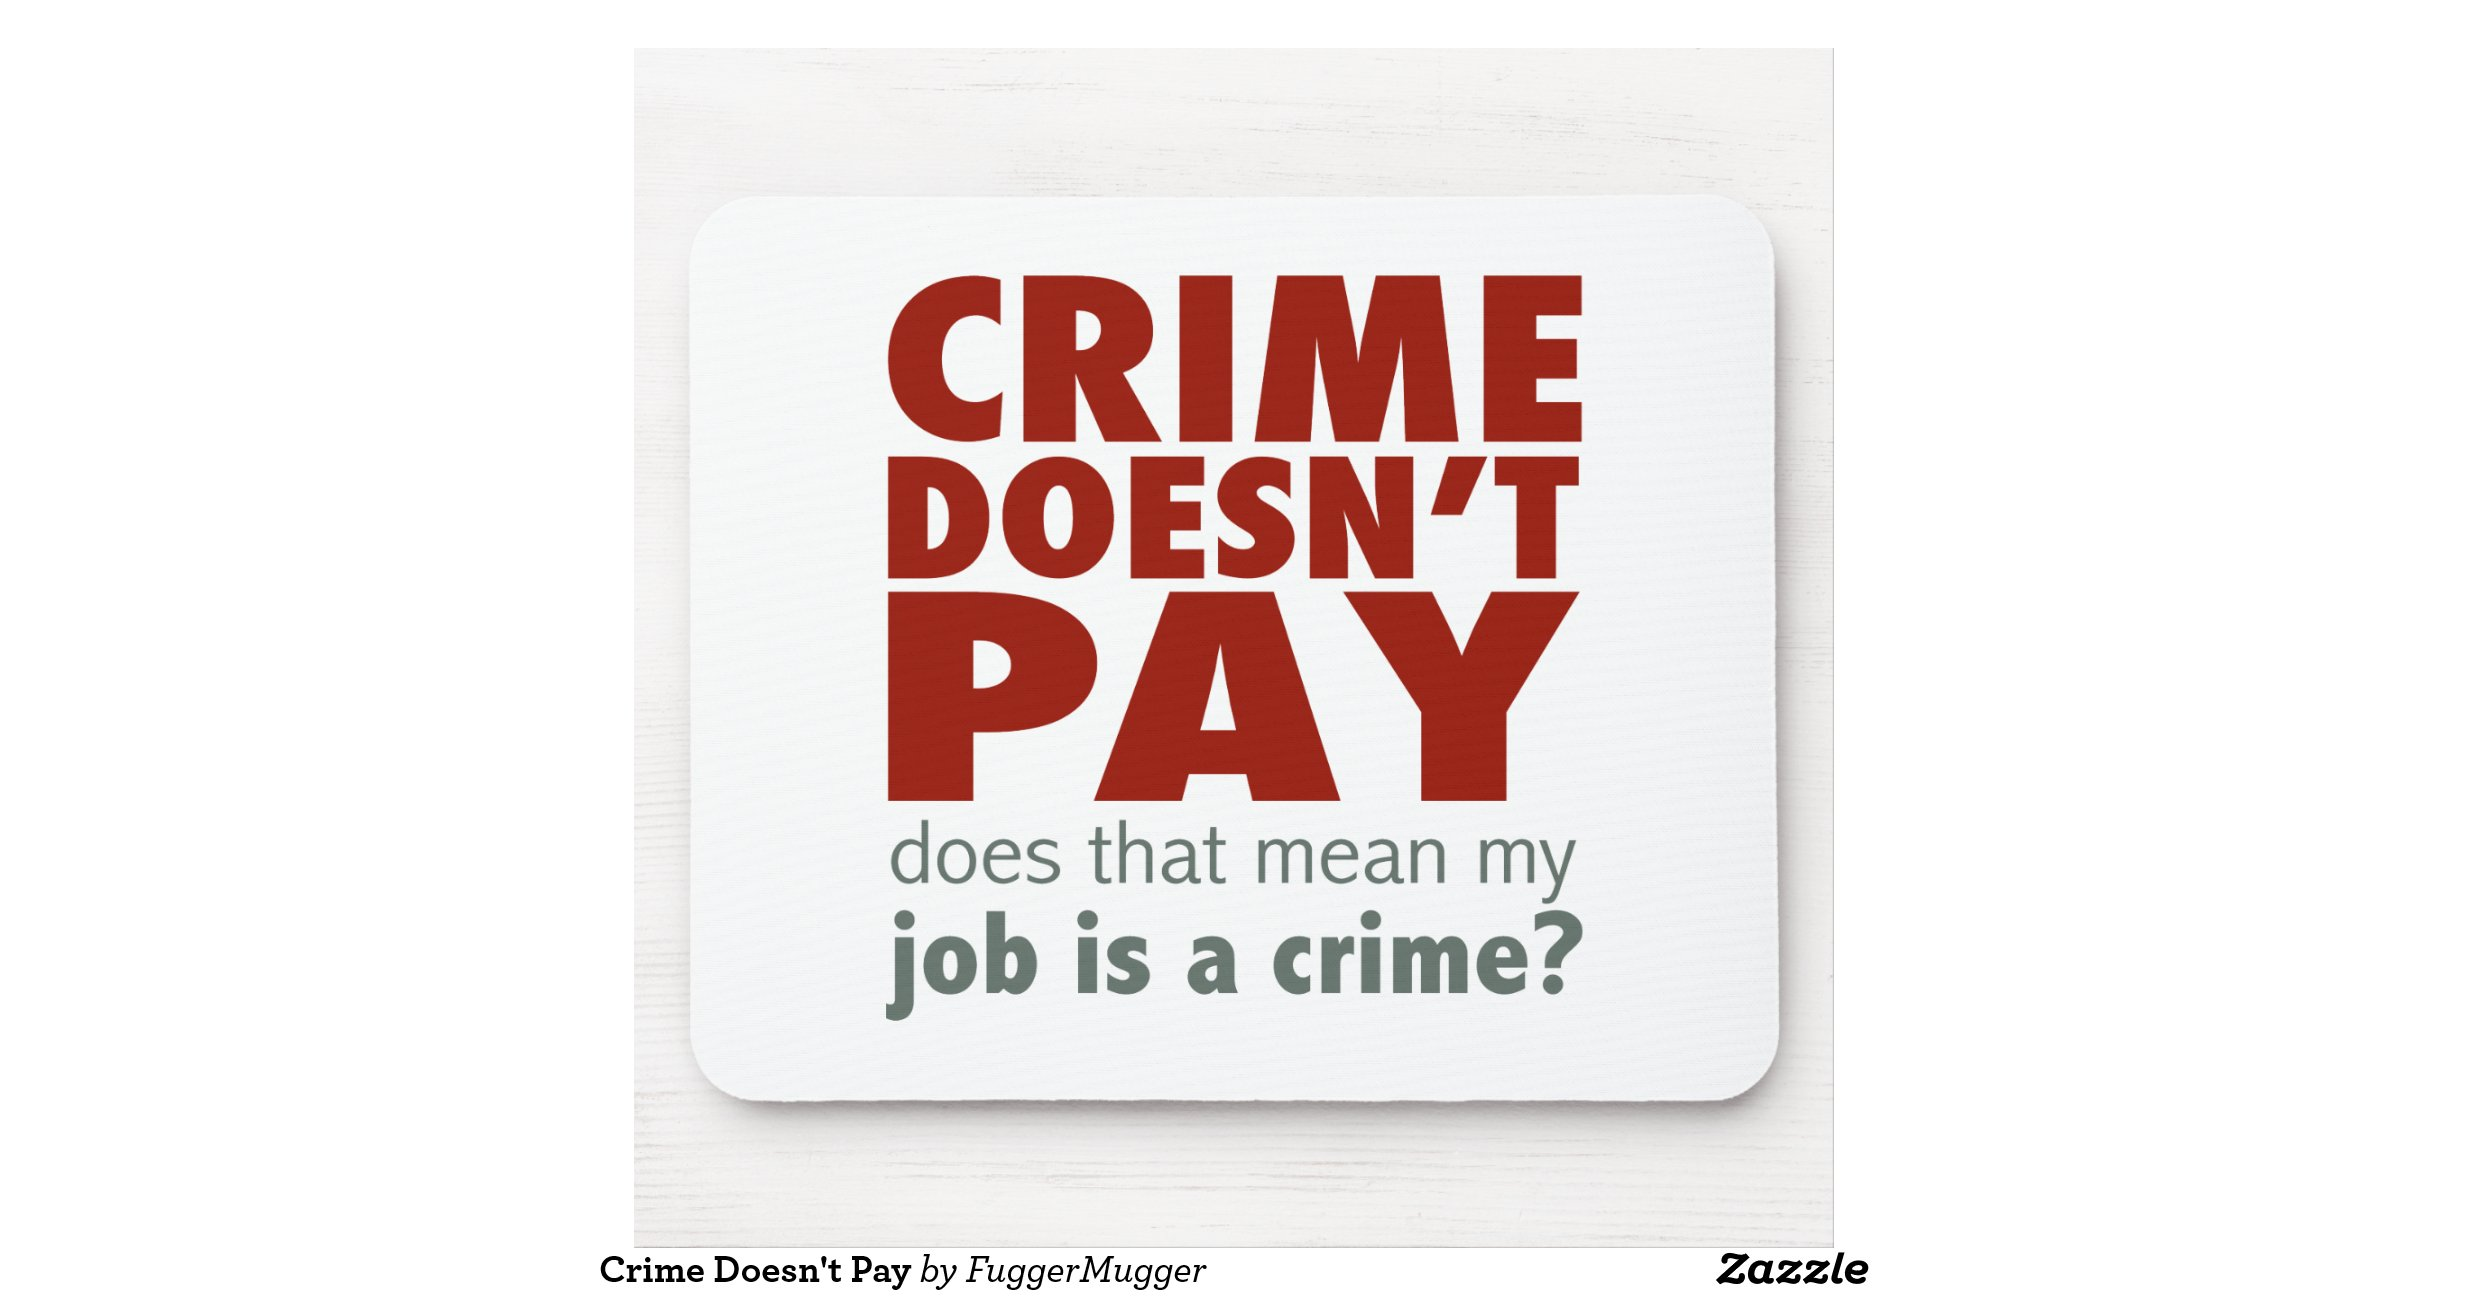 does crime pay essay | Bartleby